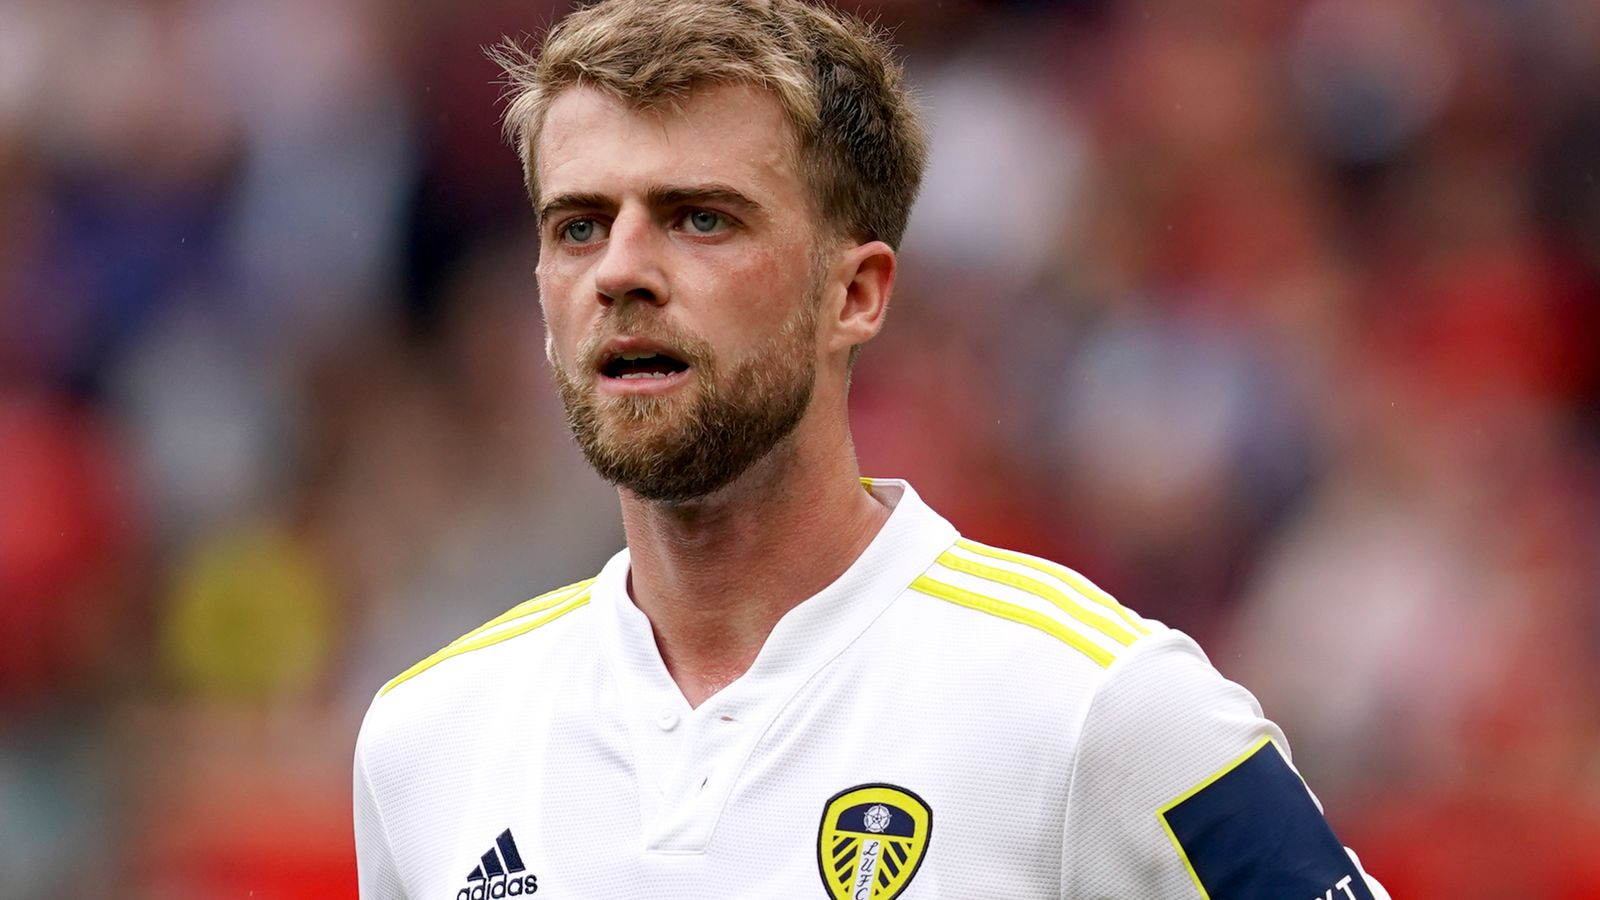 Patrick Bamford has signed a five-year contract extension with Leeds United.